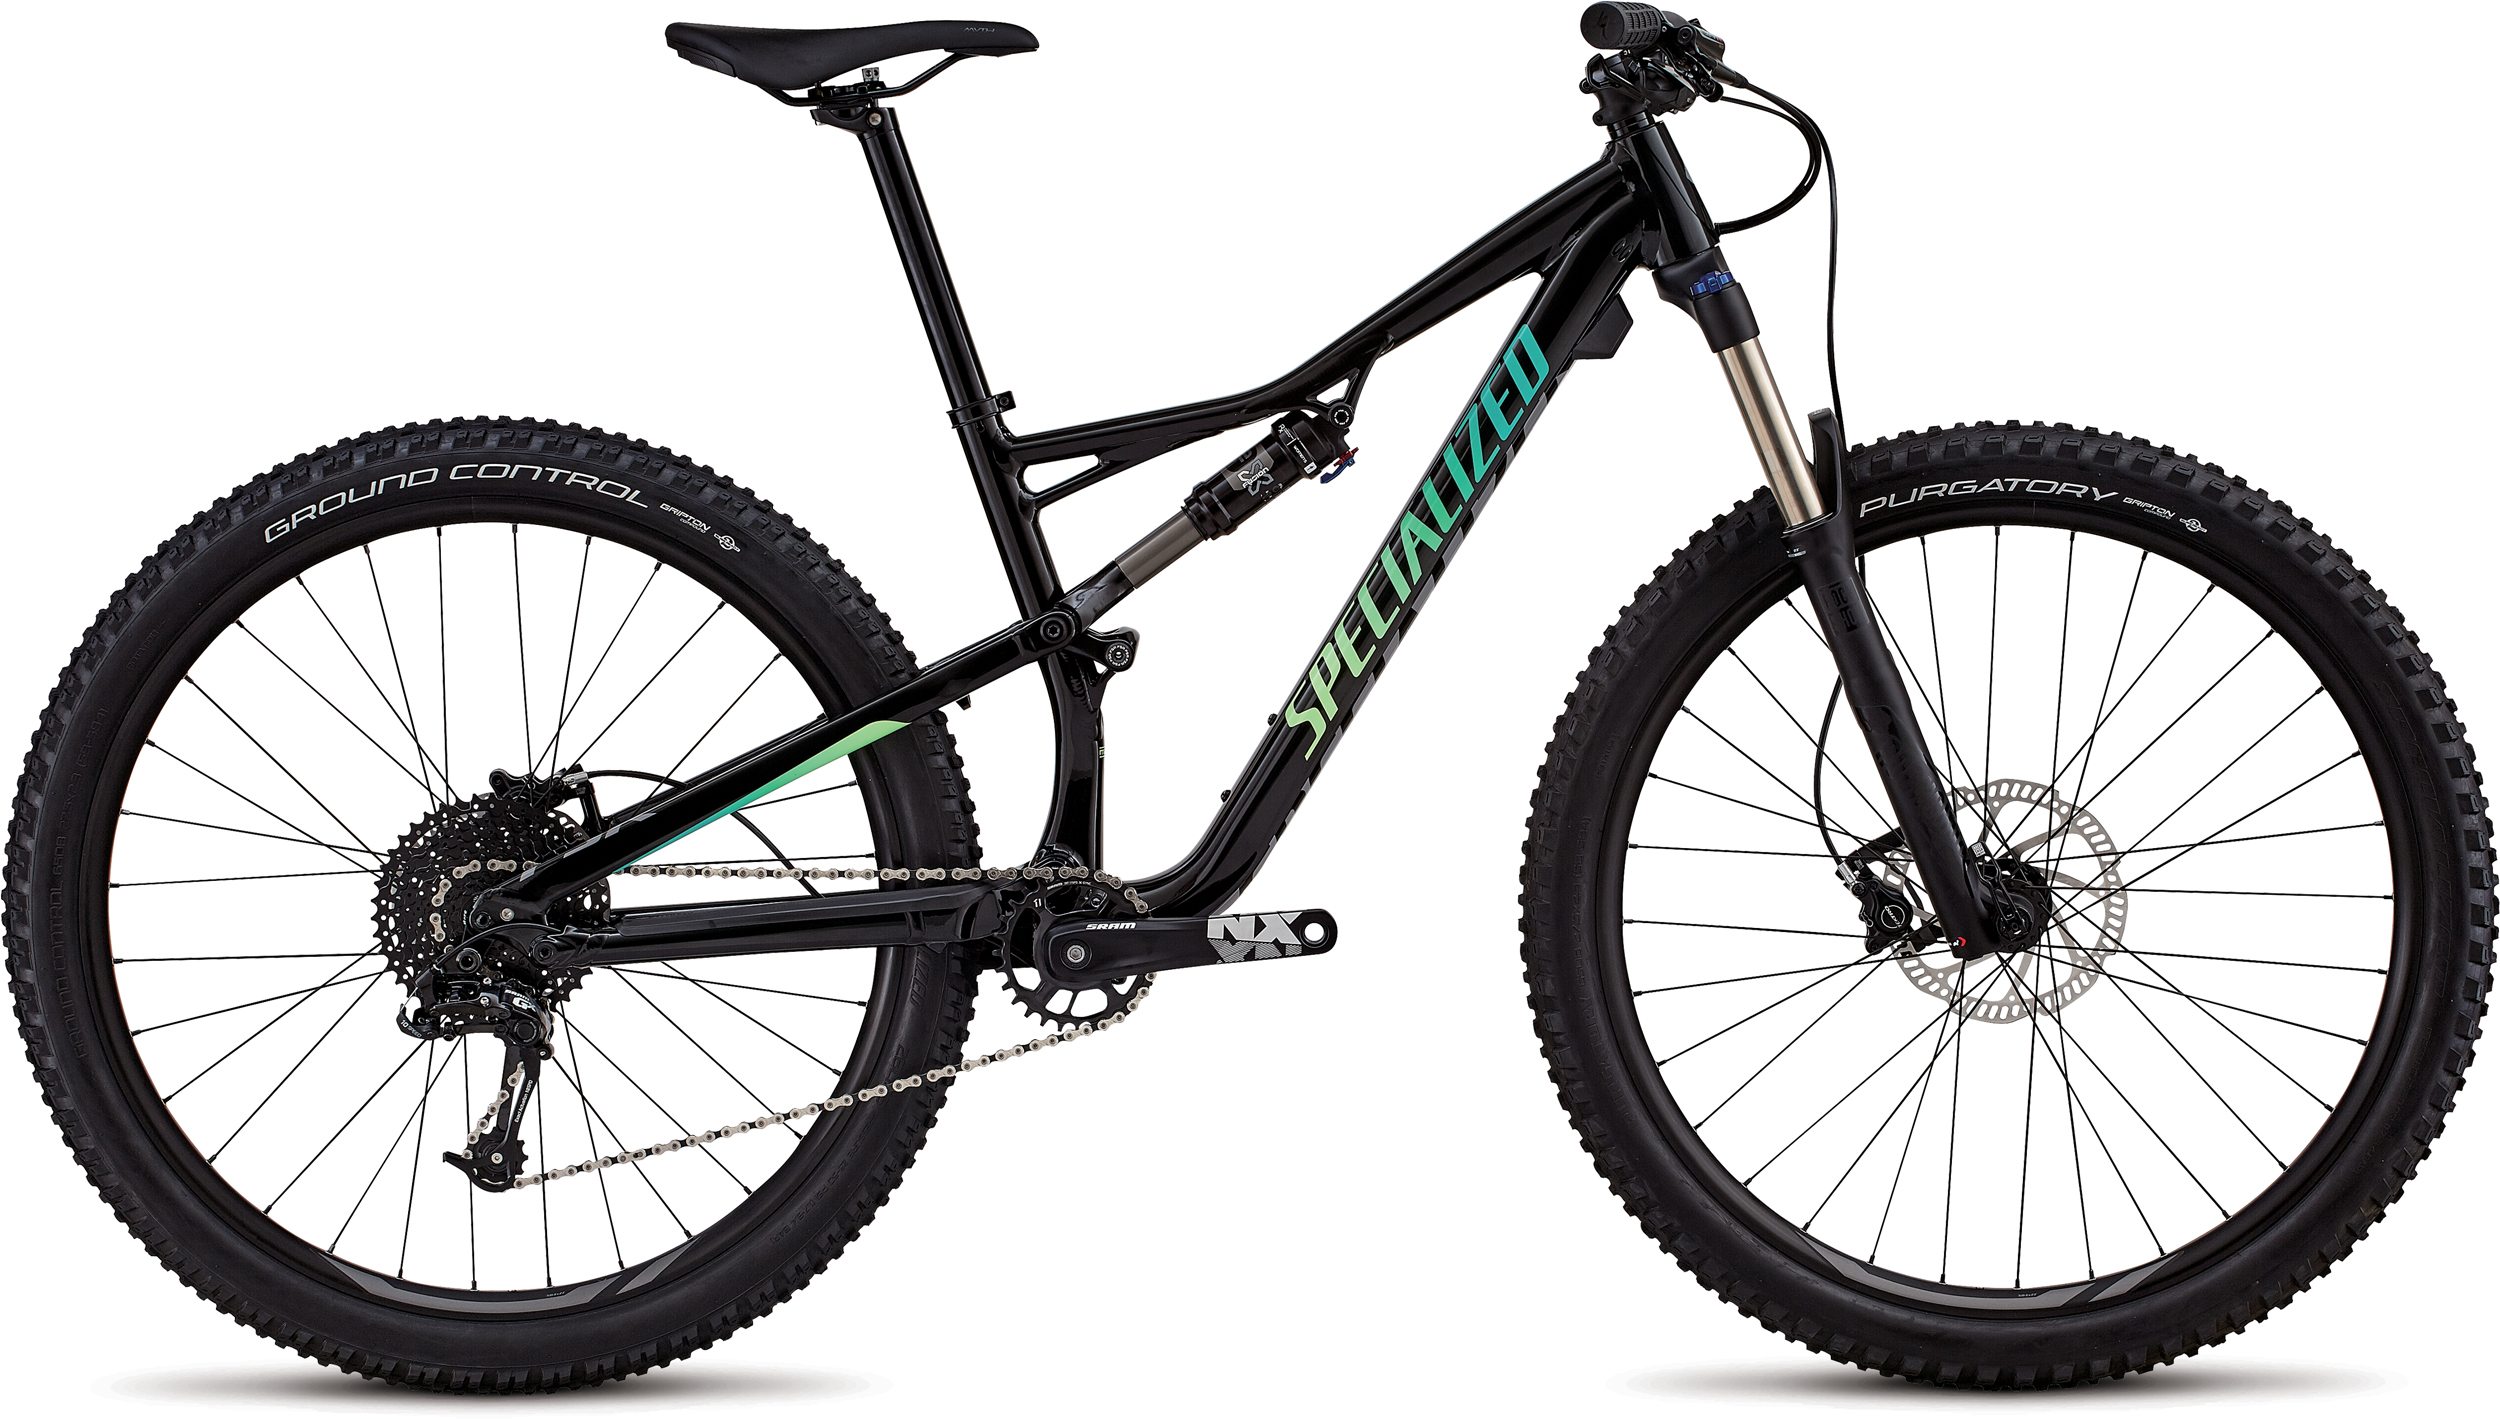 2018 Women's Camber starts at $1649